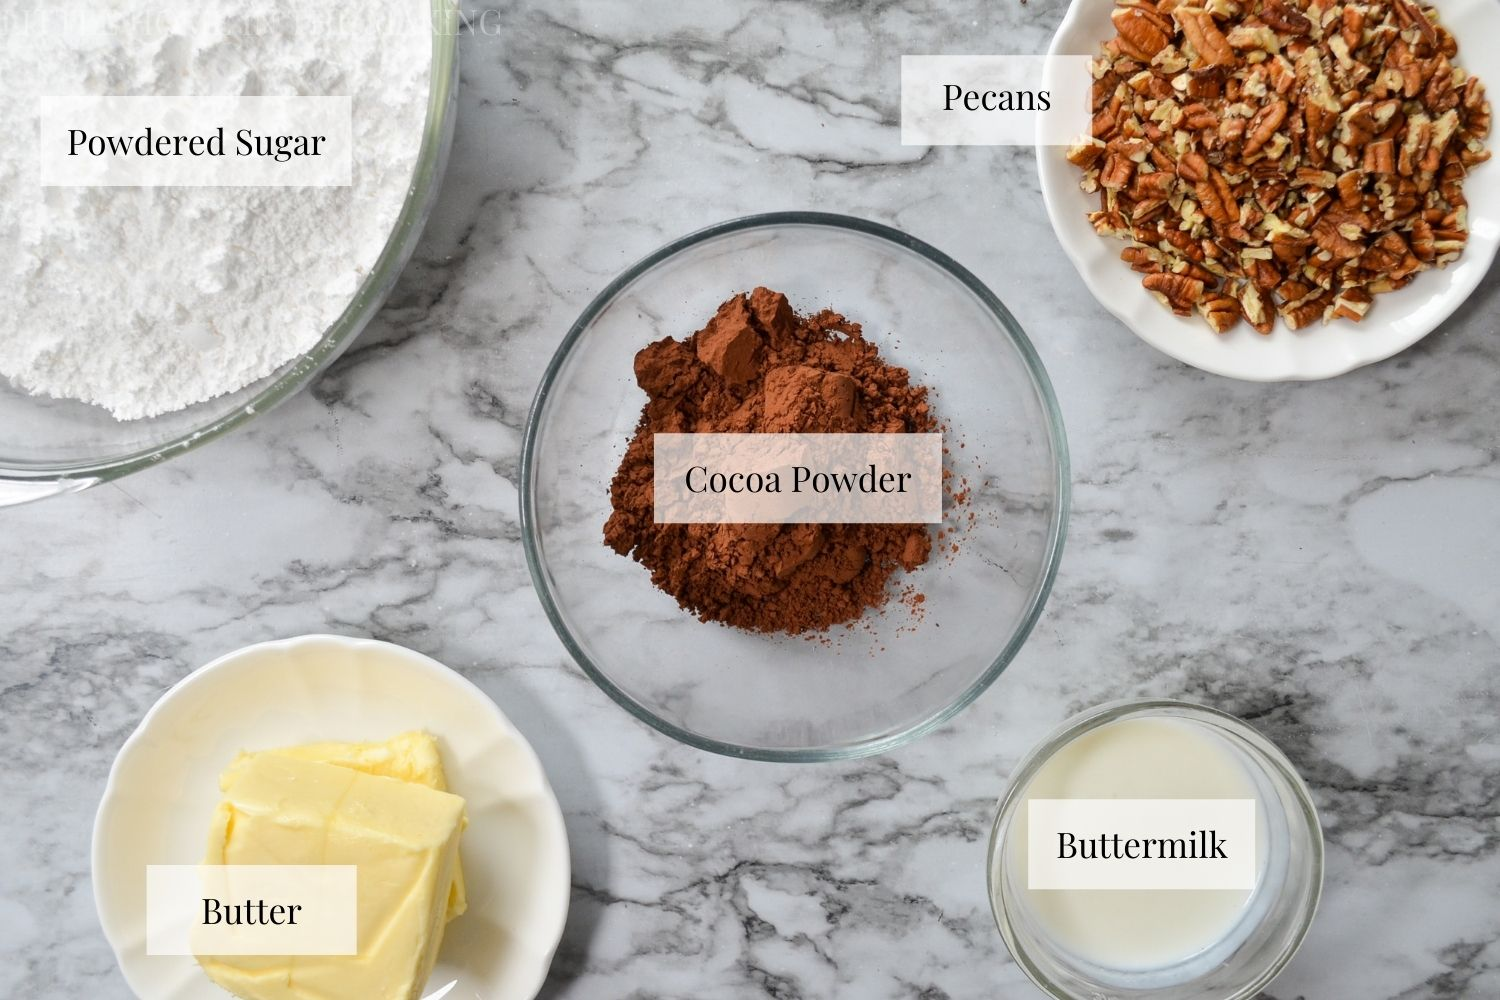 The ingredients needed to make Texas Sheet Cake frosting.